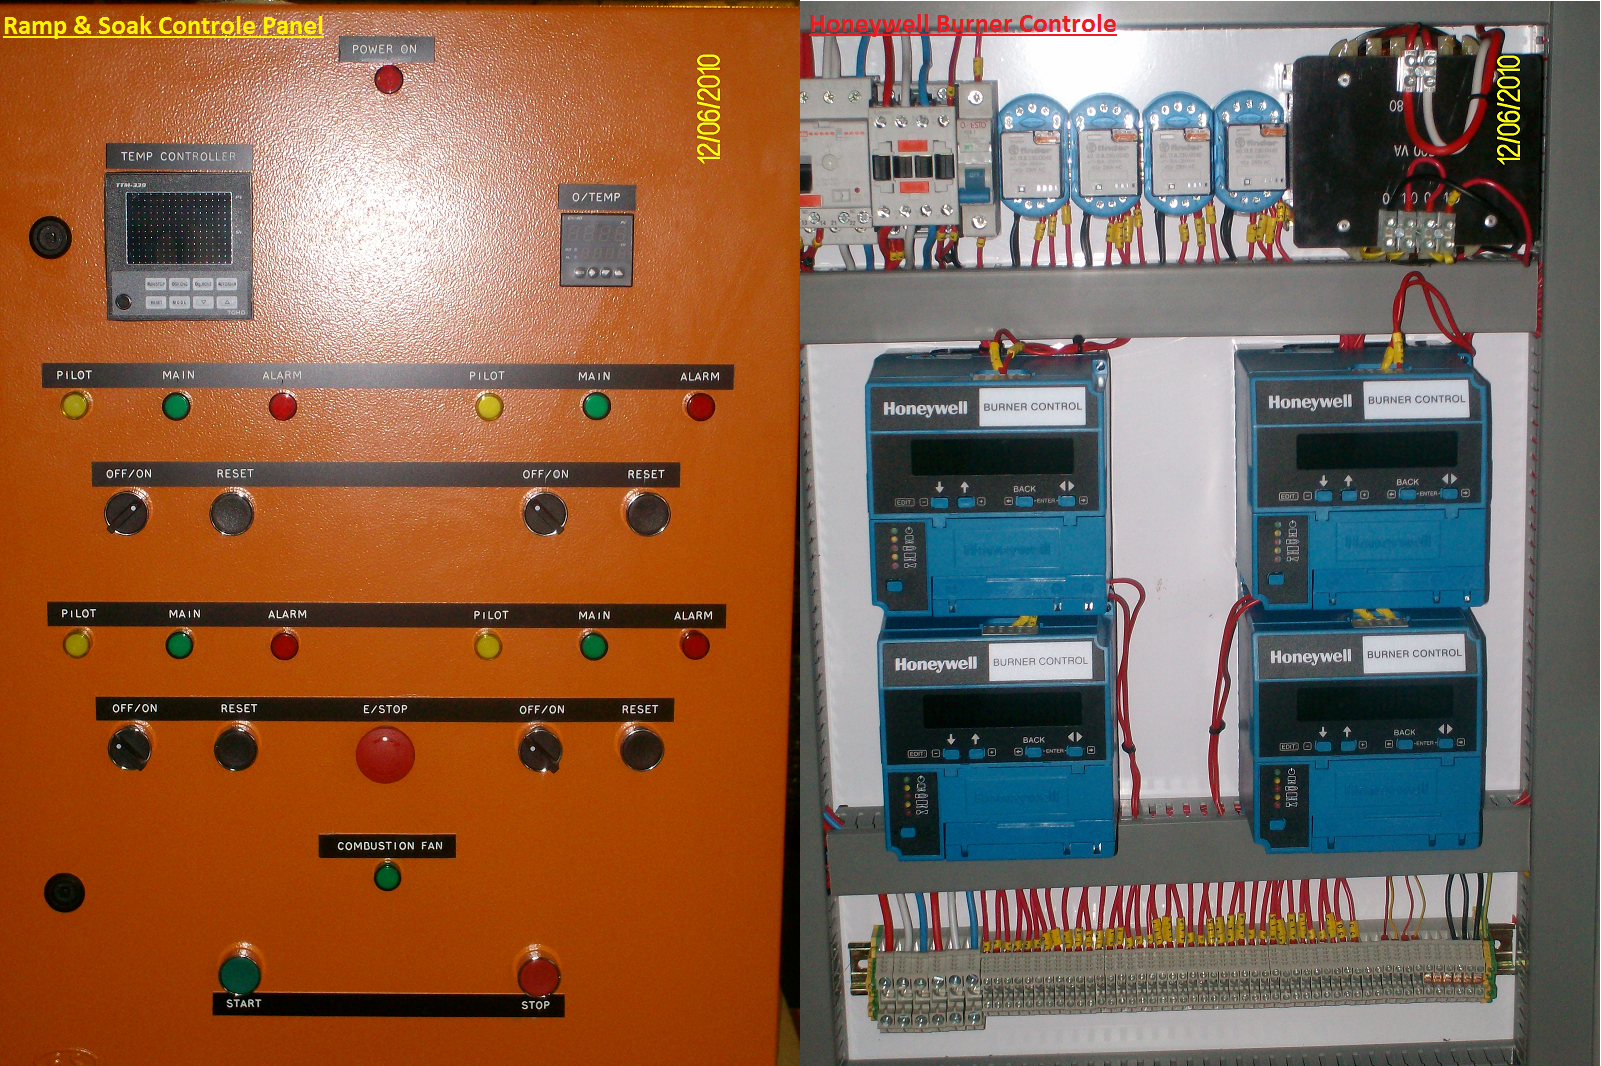 Cumbustion Gas Burner Services Industrial Wiring Diagram Honeywell To Suit Application With Cad And Plc 39 In Line Heaters 310 Any Specialized Heating Process Control System Customer